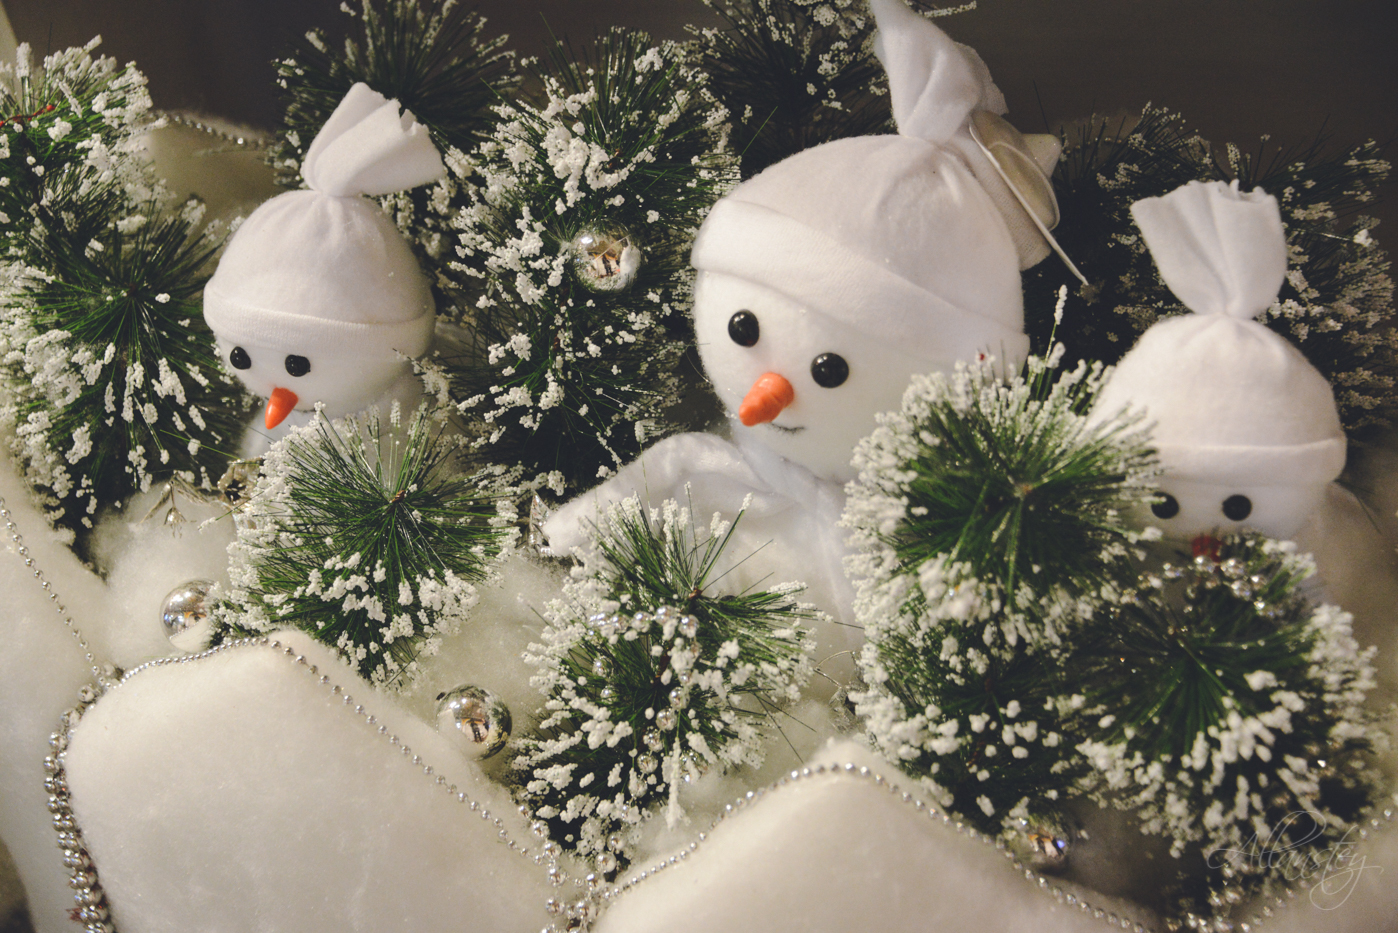 cute pretty snomen white Christmas winter holiday decorations